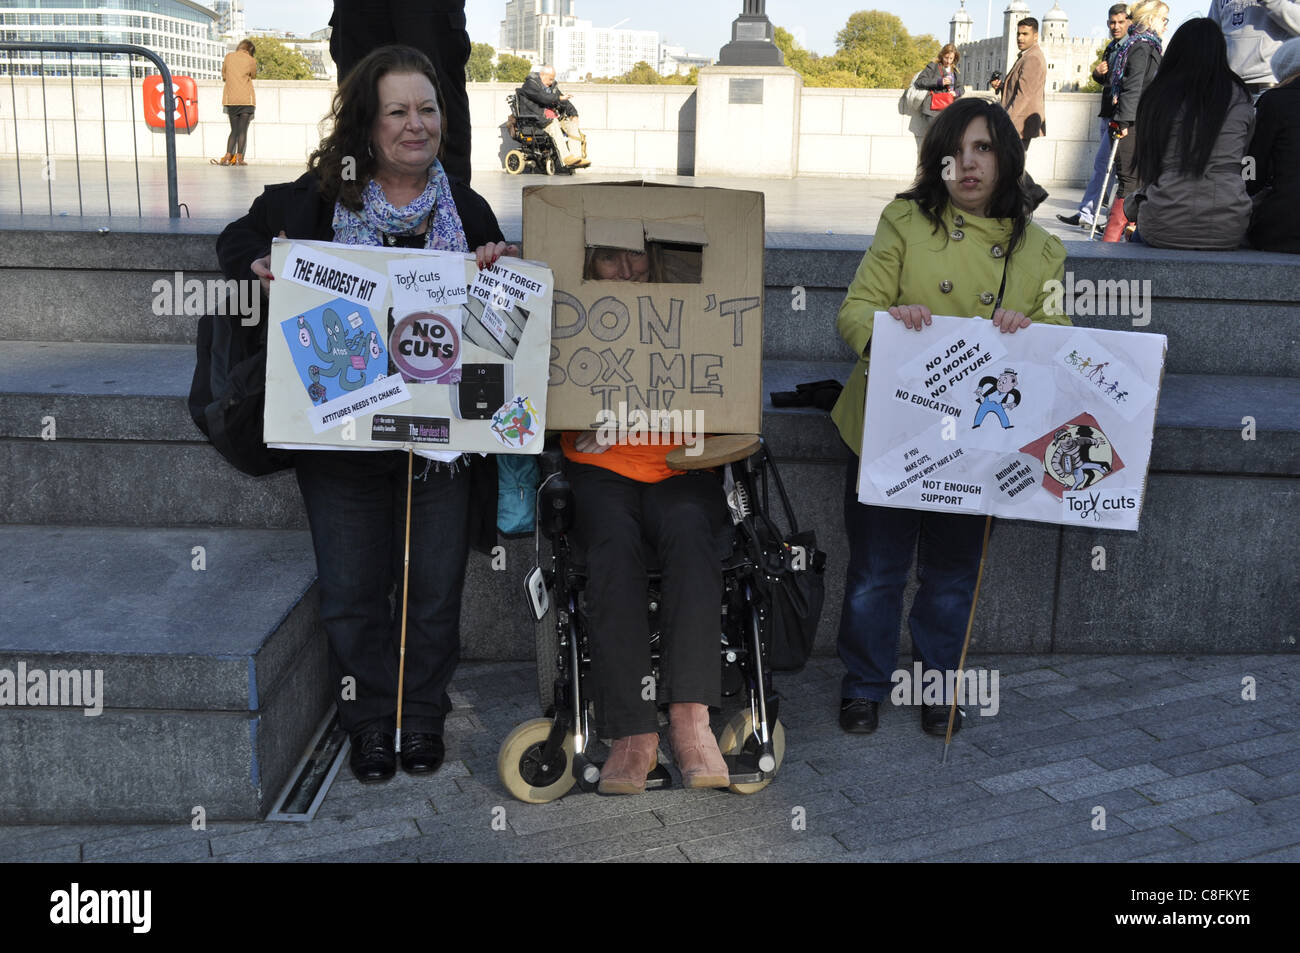 London, UK, 22/10/2011. Disabled people and their supporters outside City Hall in London UK attending the Hardest Stock Photo